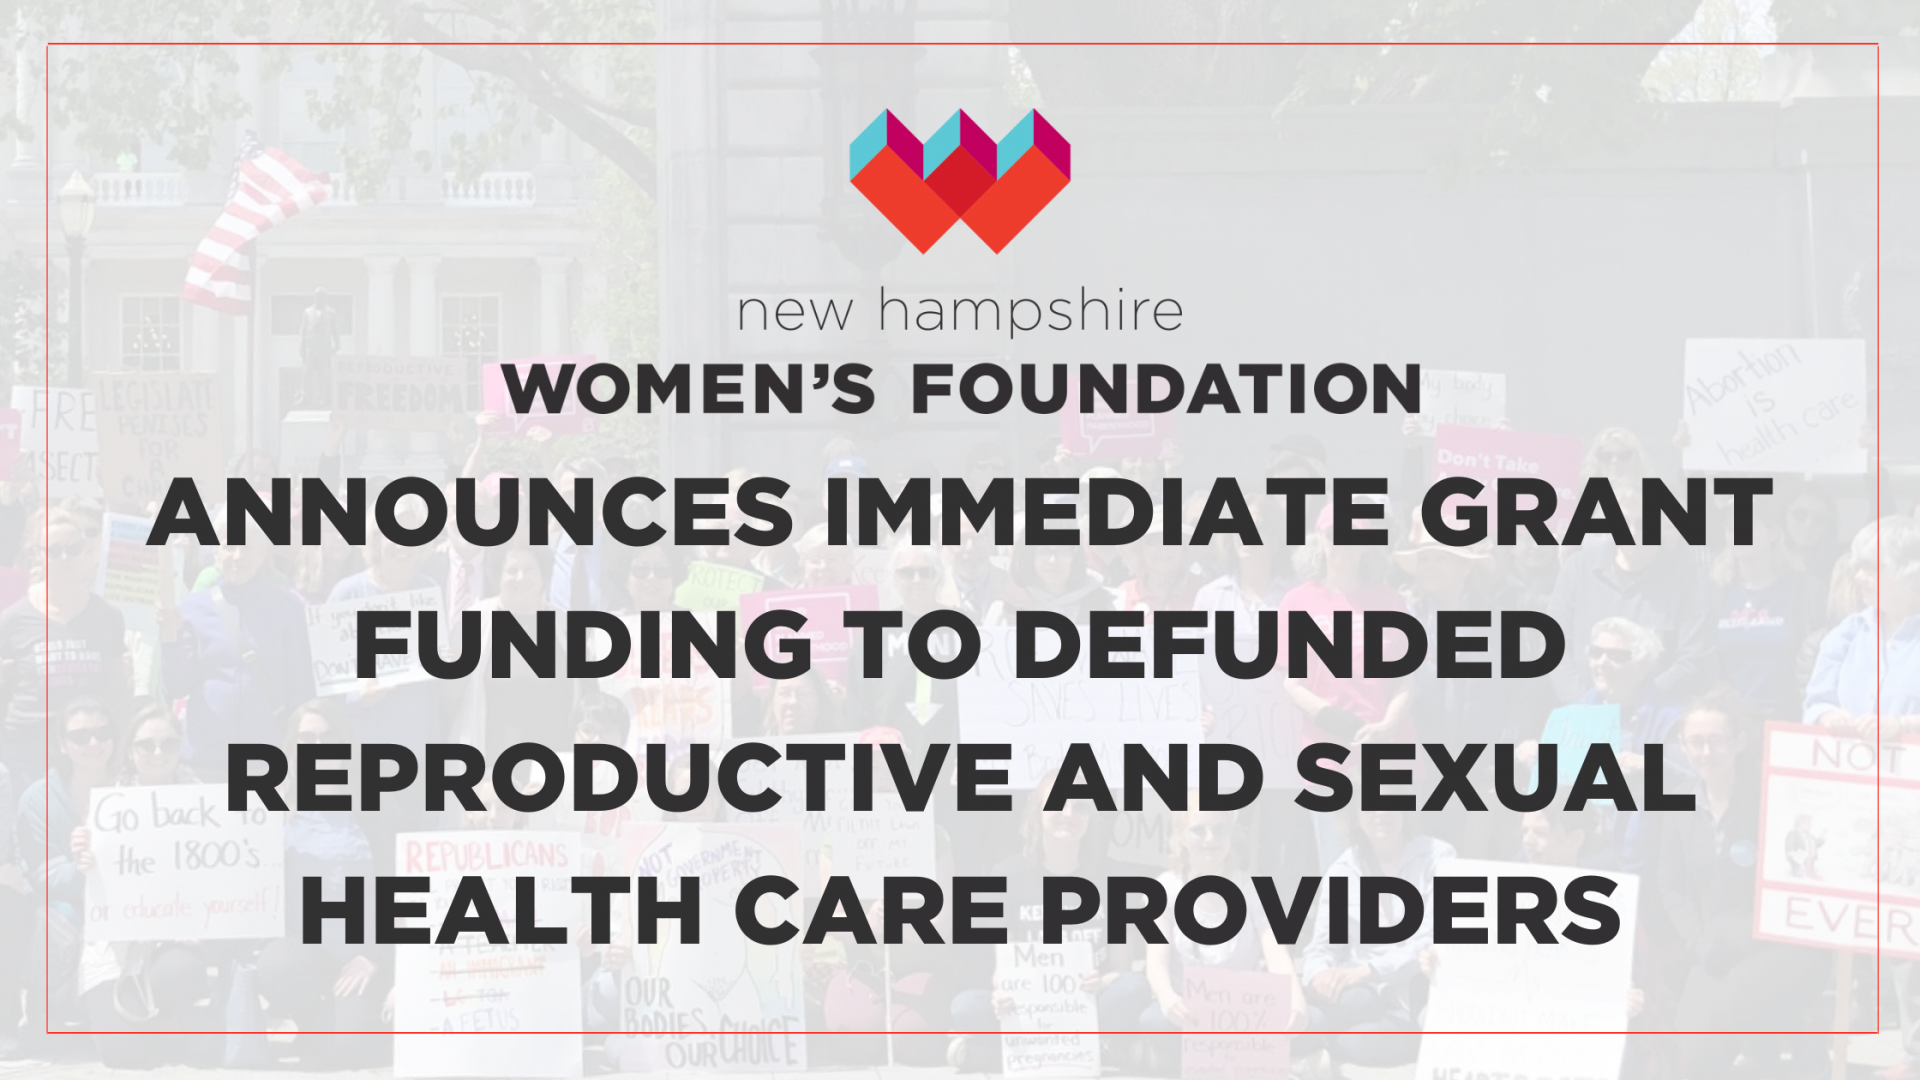 Announcing Immediate Grant Funding To Defunded Reproductive And Sexual Health Care Providers